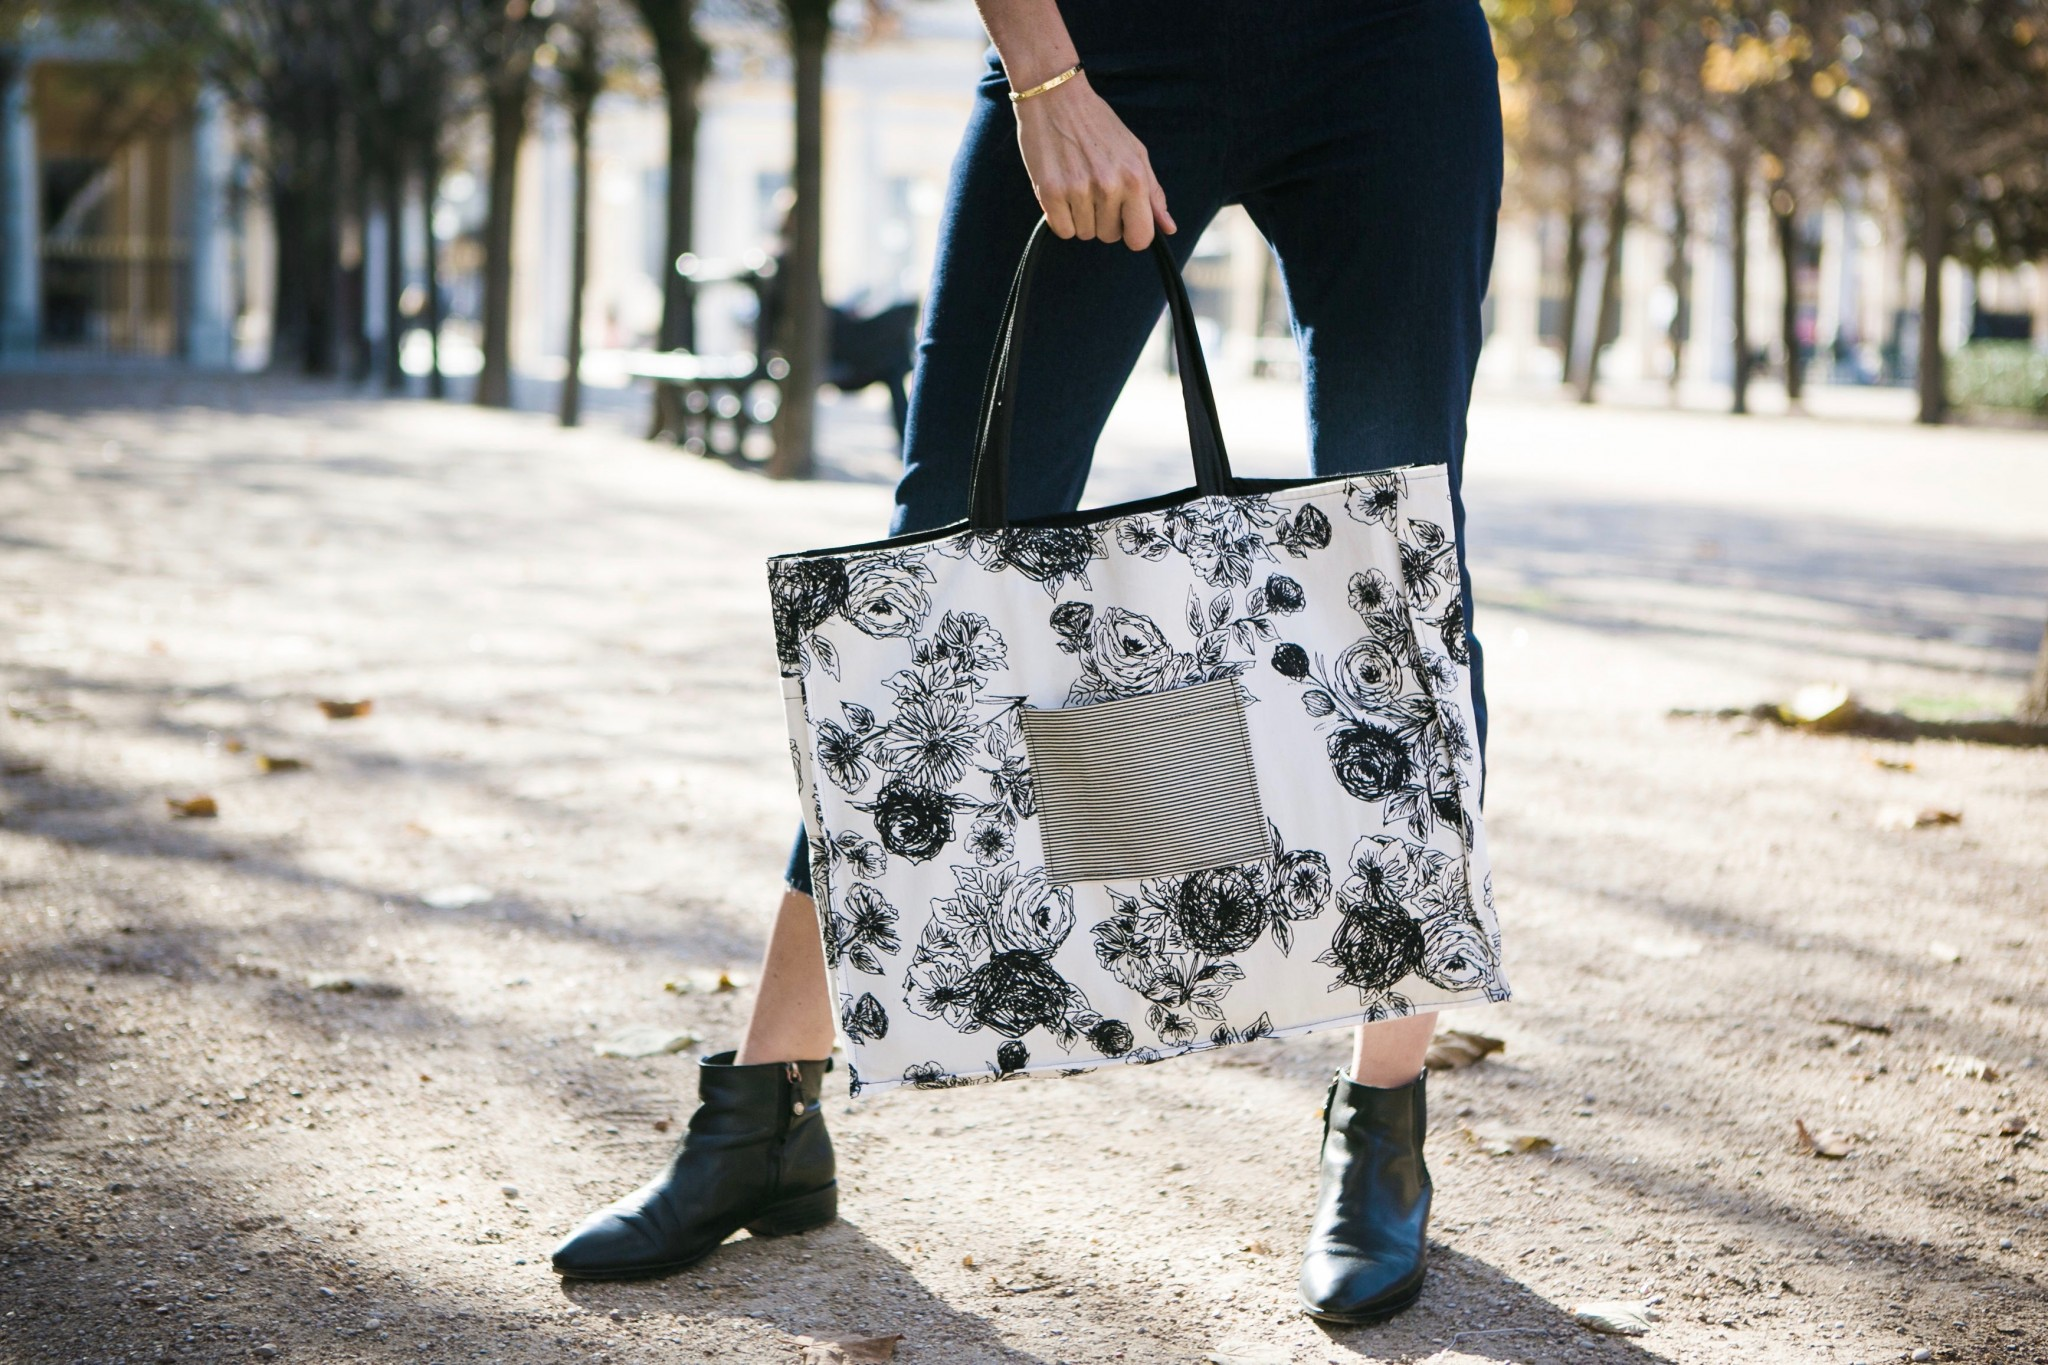 0e8cc0568 The XL style is back, this time inspired by Notting Hill. This tote too is  reversible, revealing a floral side. The perfect weekender!